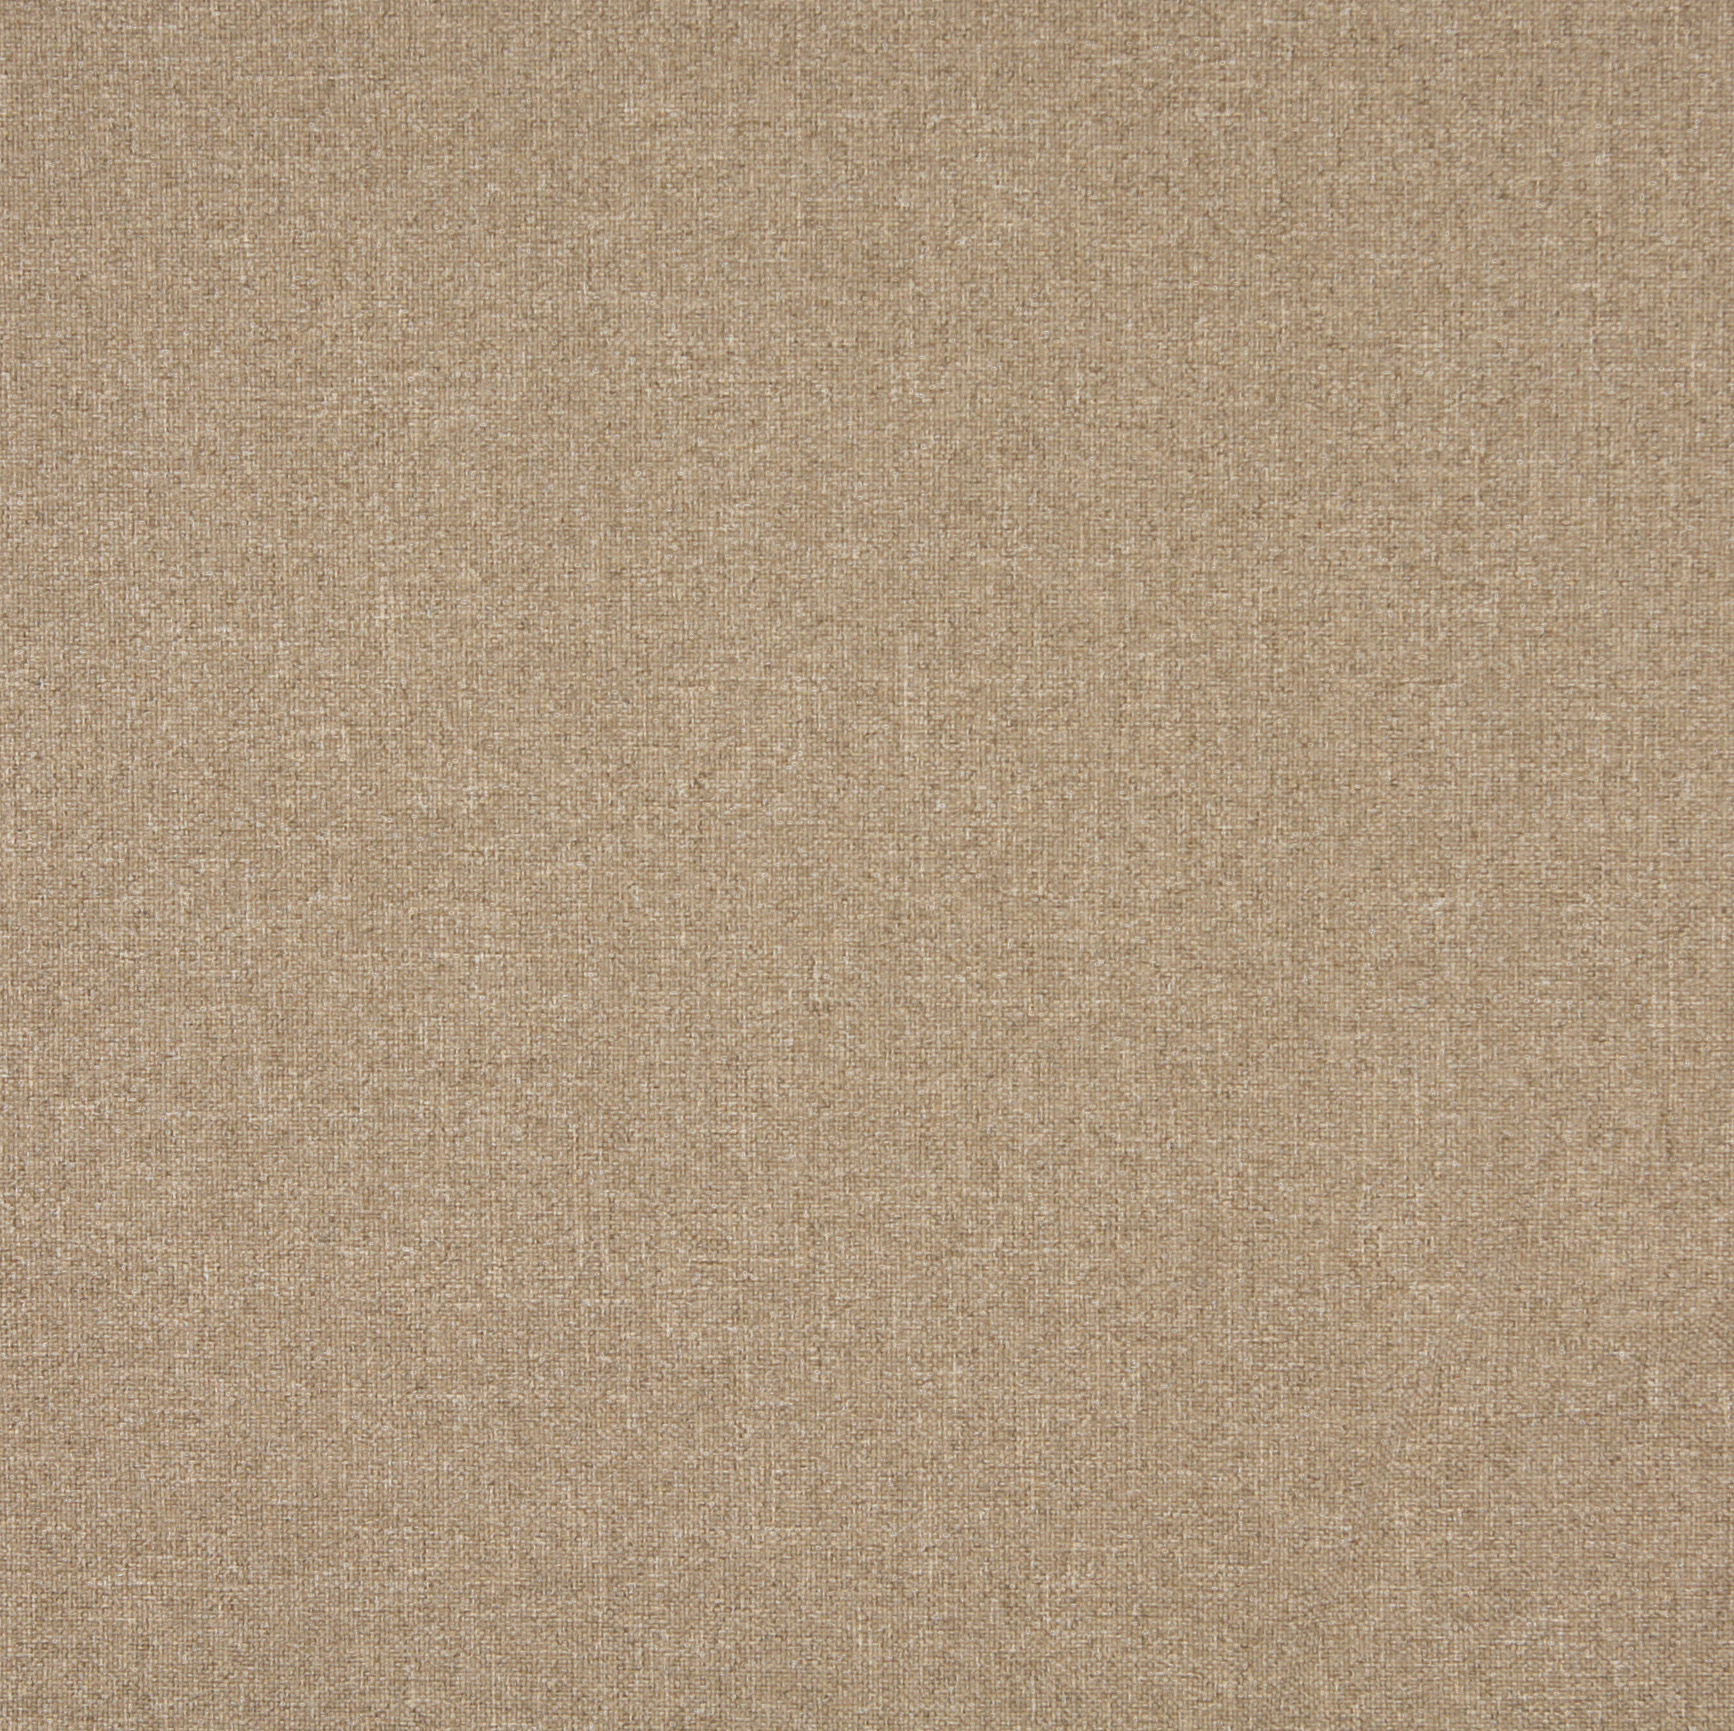 Beige Sand Plain Tweed Stain And Soil Repellent Upholstery